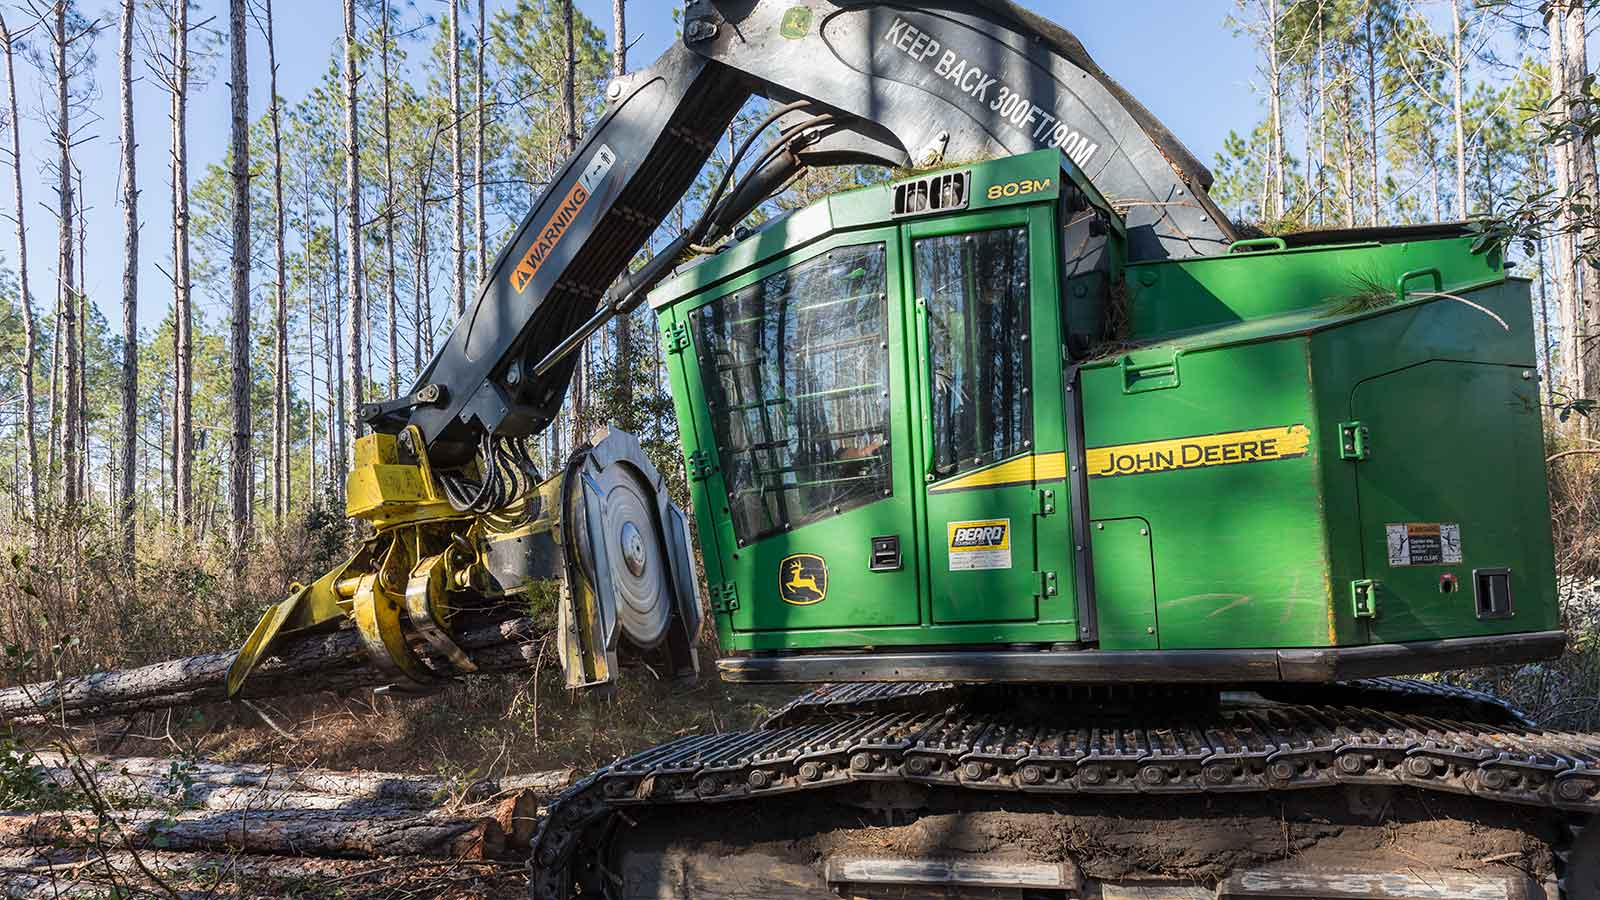 A John Deere 803M Tracked Feller Buncher cutting trees in a swampy forest.